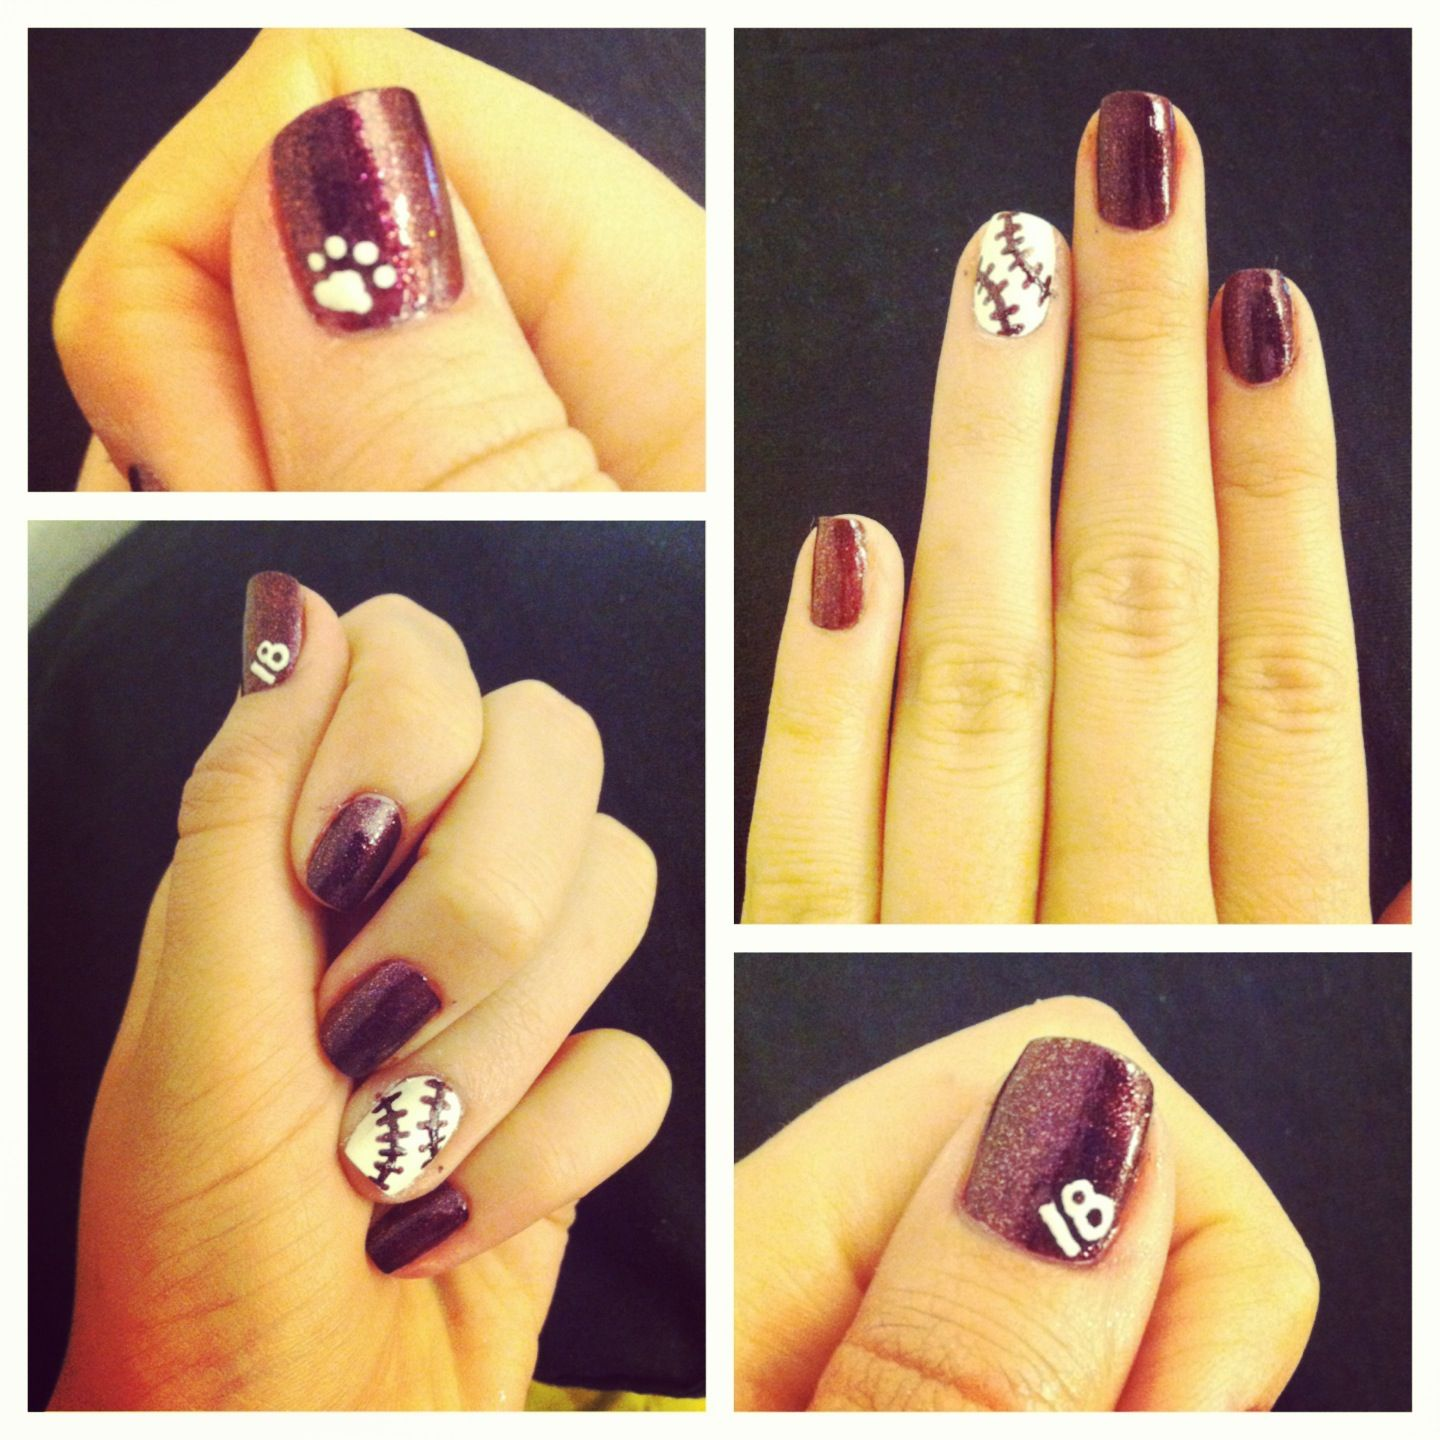 Mississippi State Omaha baseball nails! I wish I would have seen ...